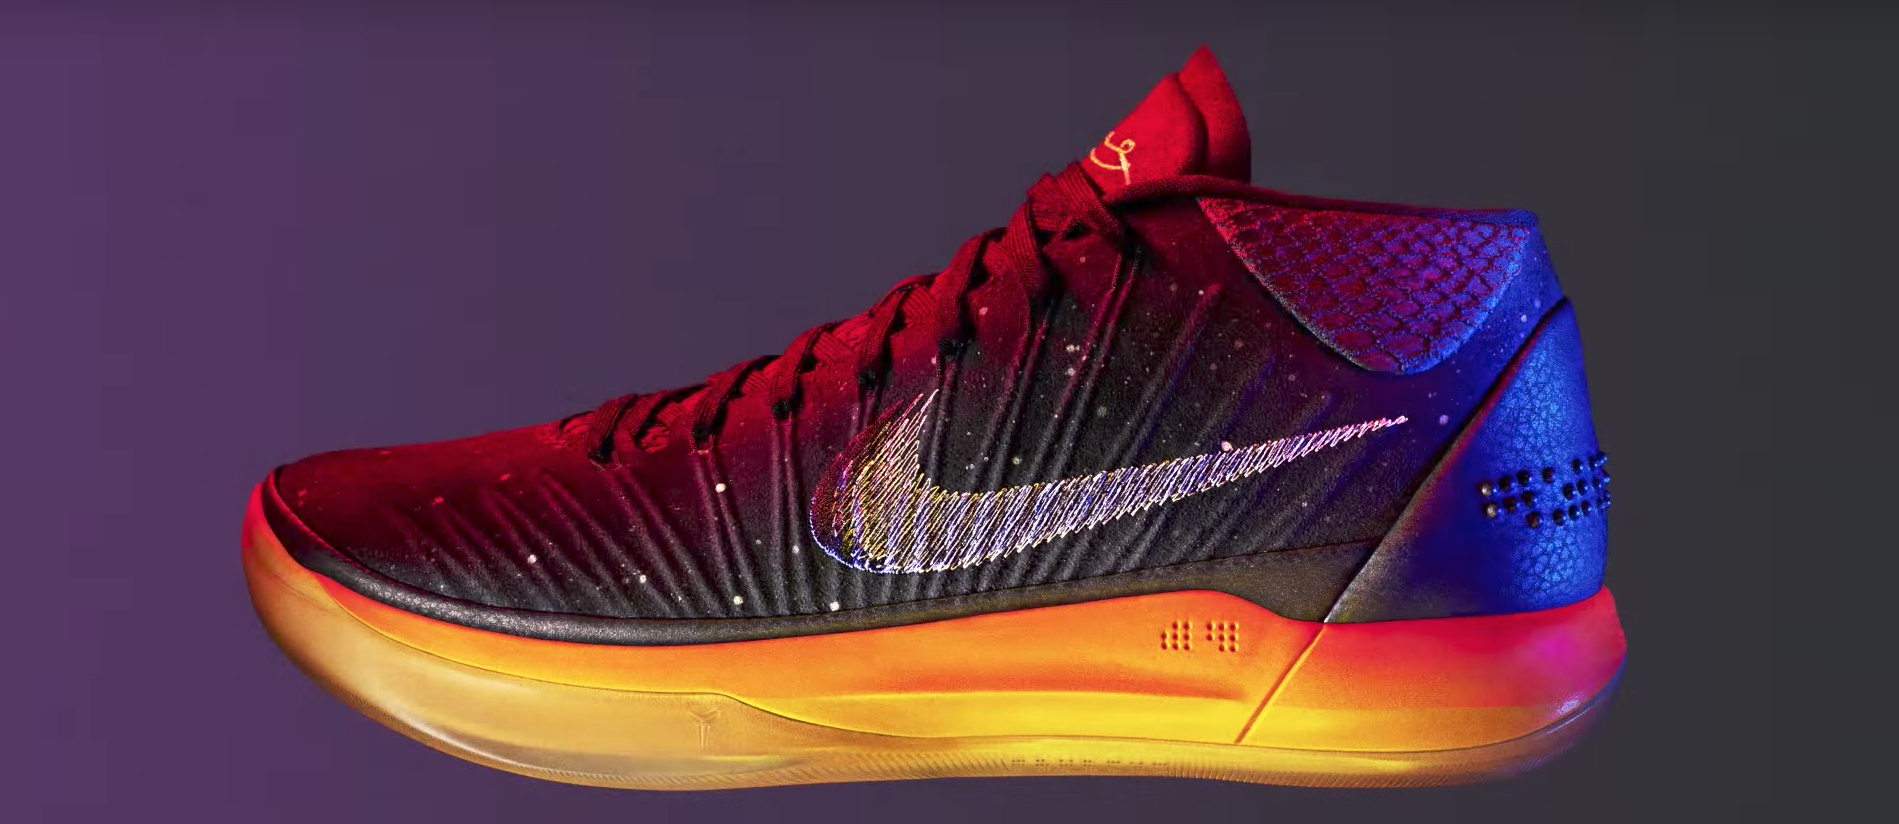 A New Colorway of the Kobe A.D. Mid Surfaces in Nike's Latest Video